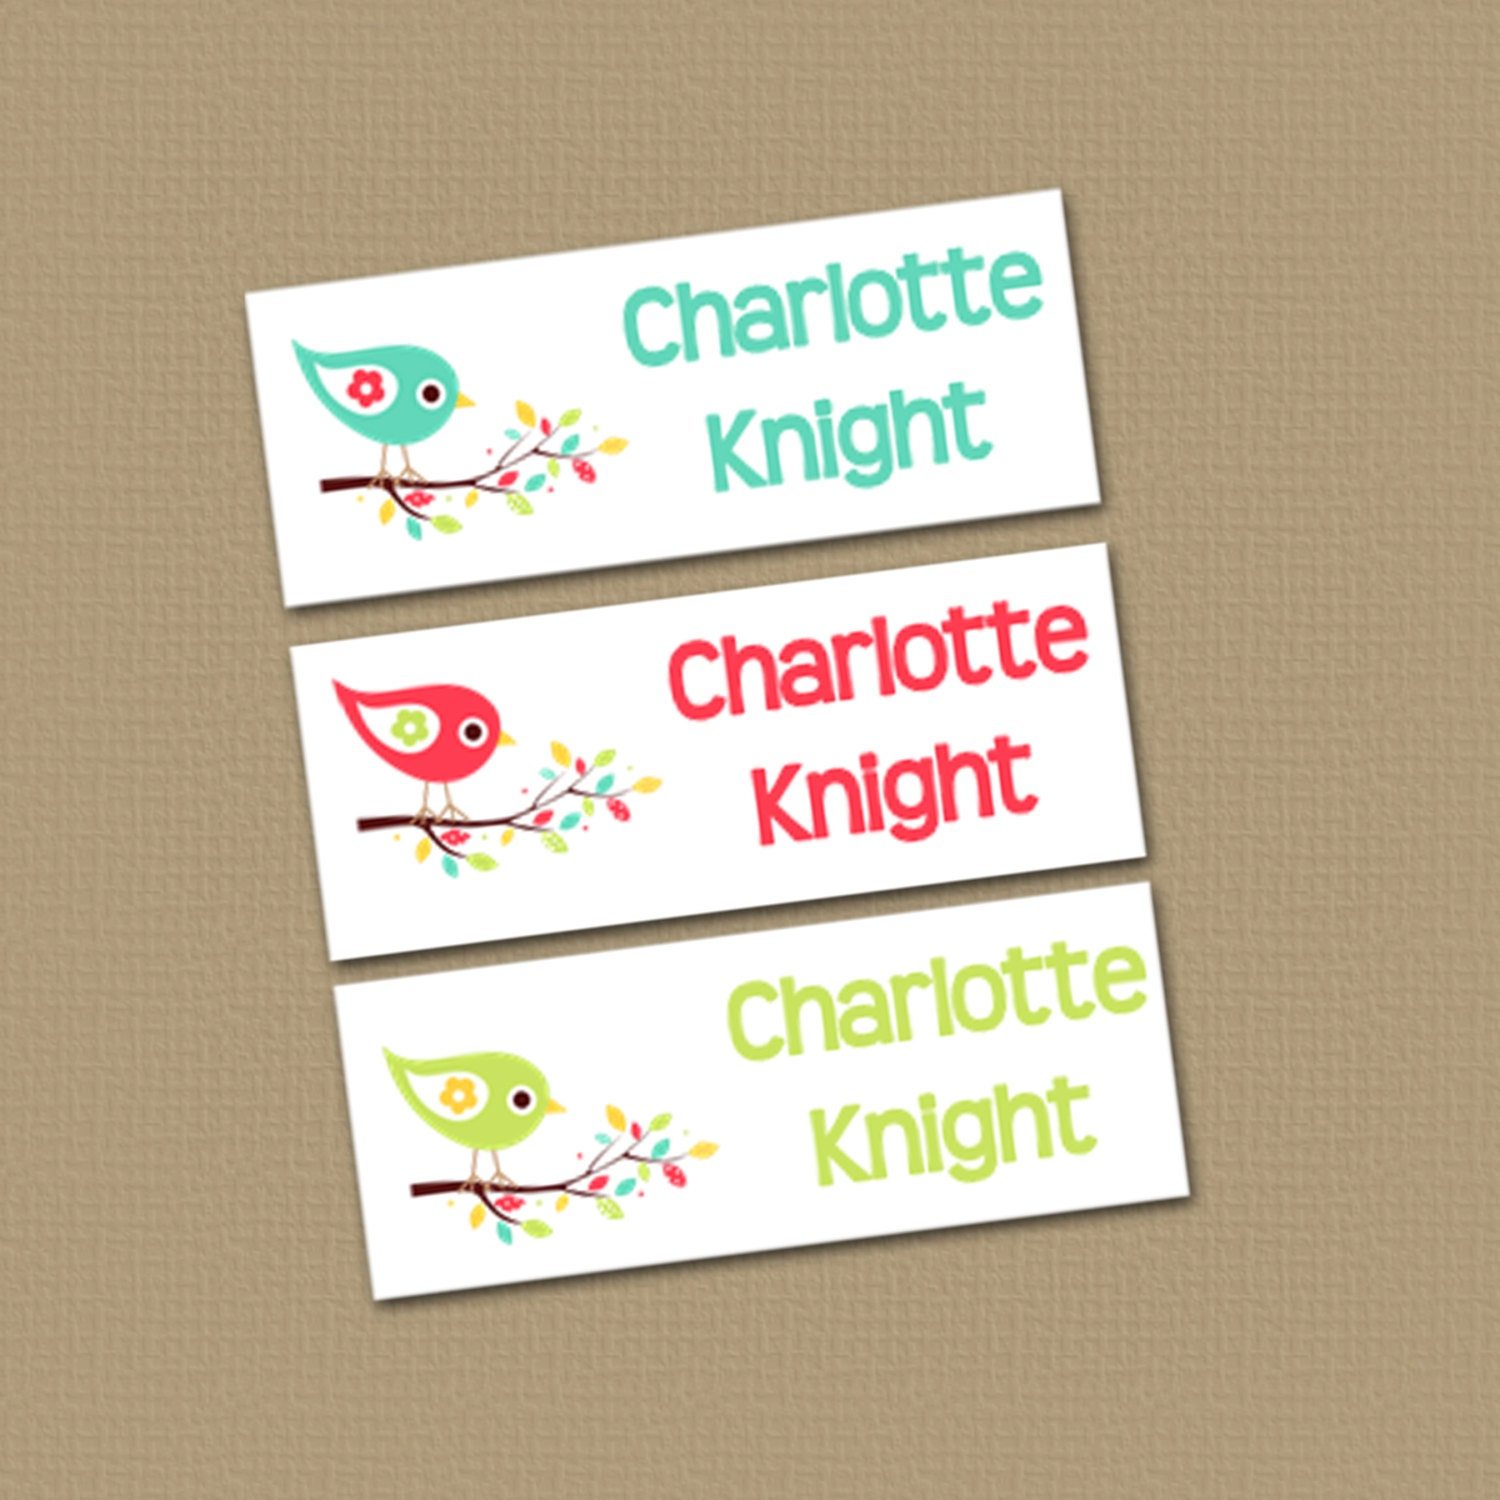 Personalized Waterproof Label Stickers Girl By Theprintedparty